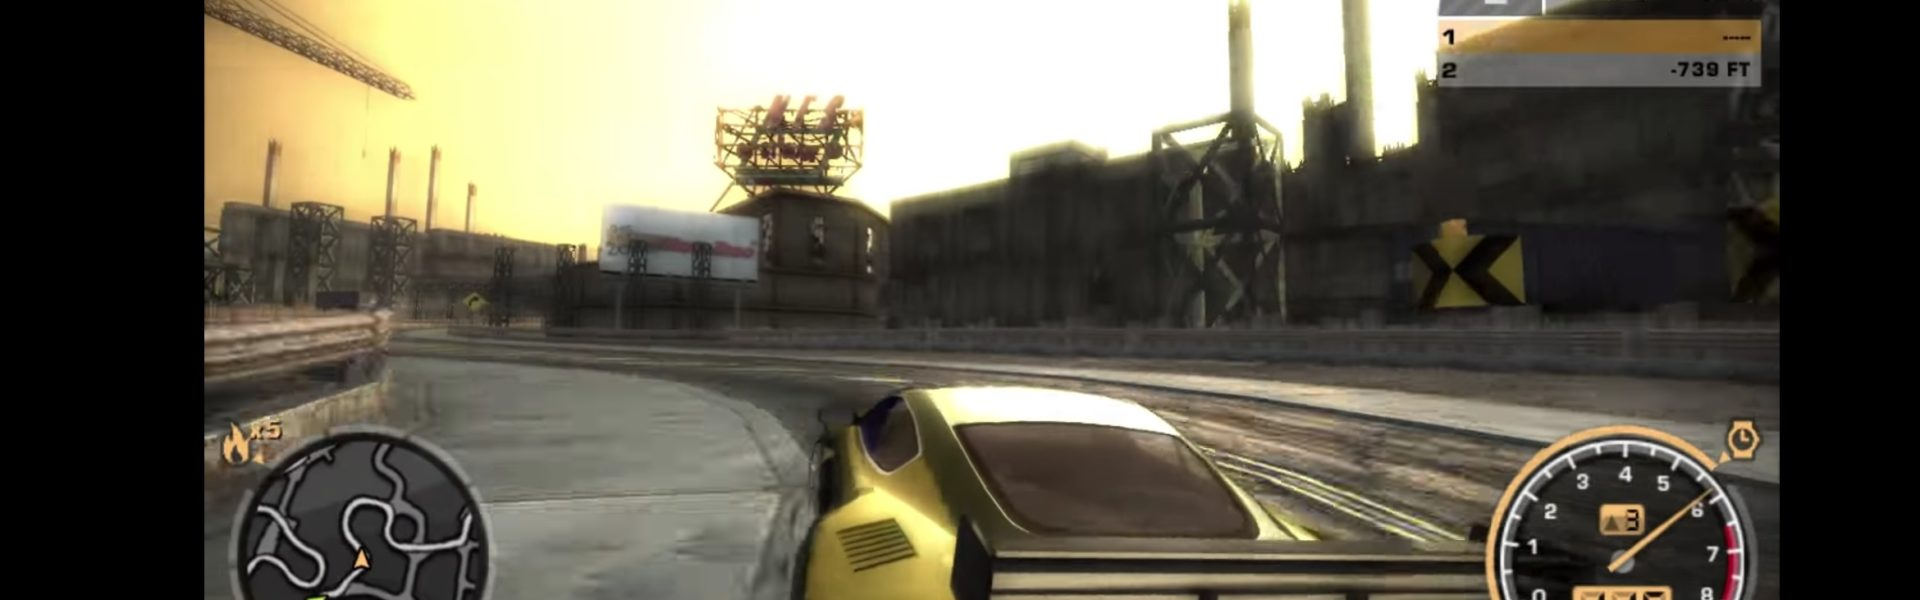 NFS Most Wanted 2005 Highly Compressed PC Download - 200Gaming